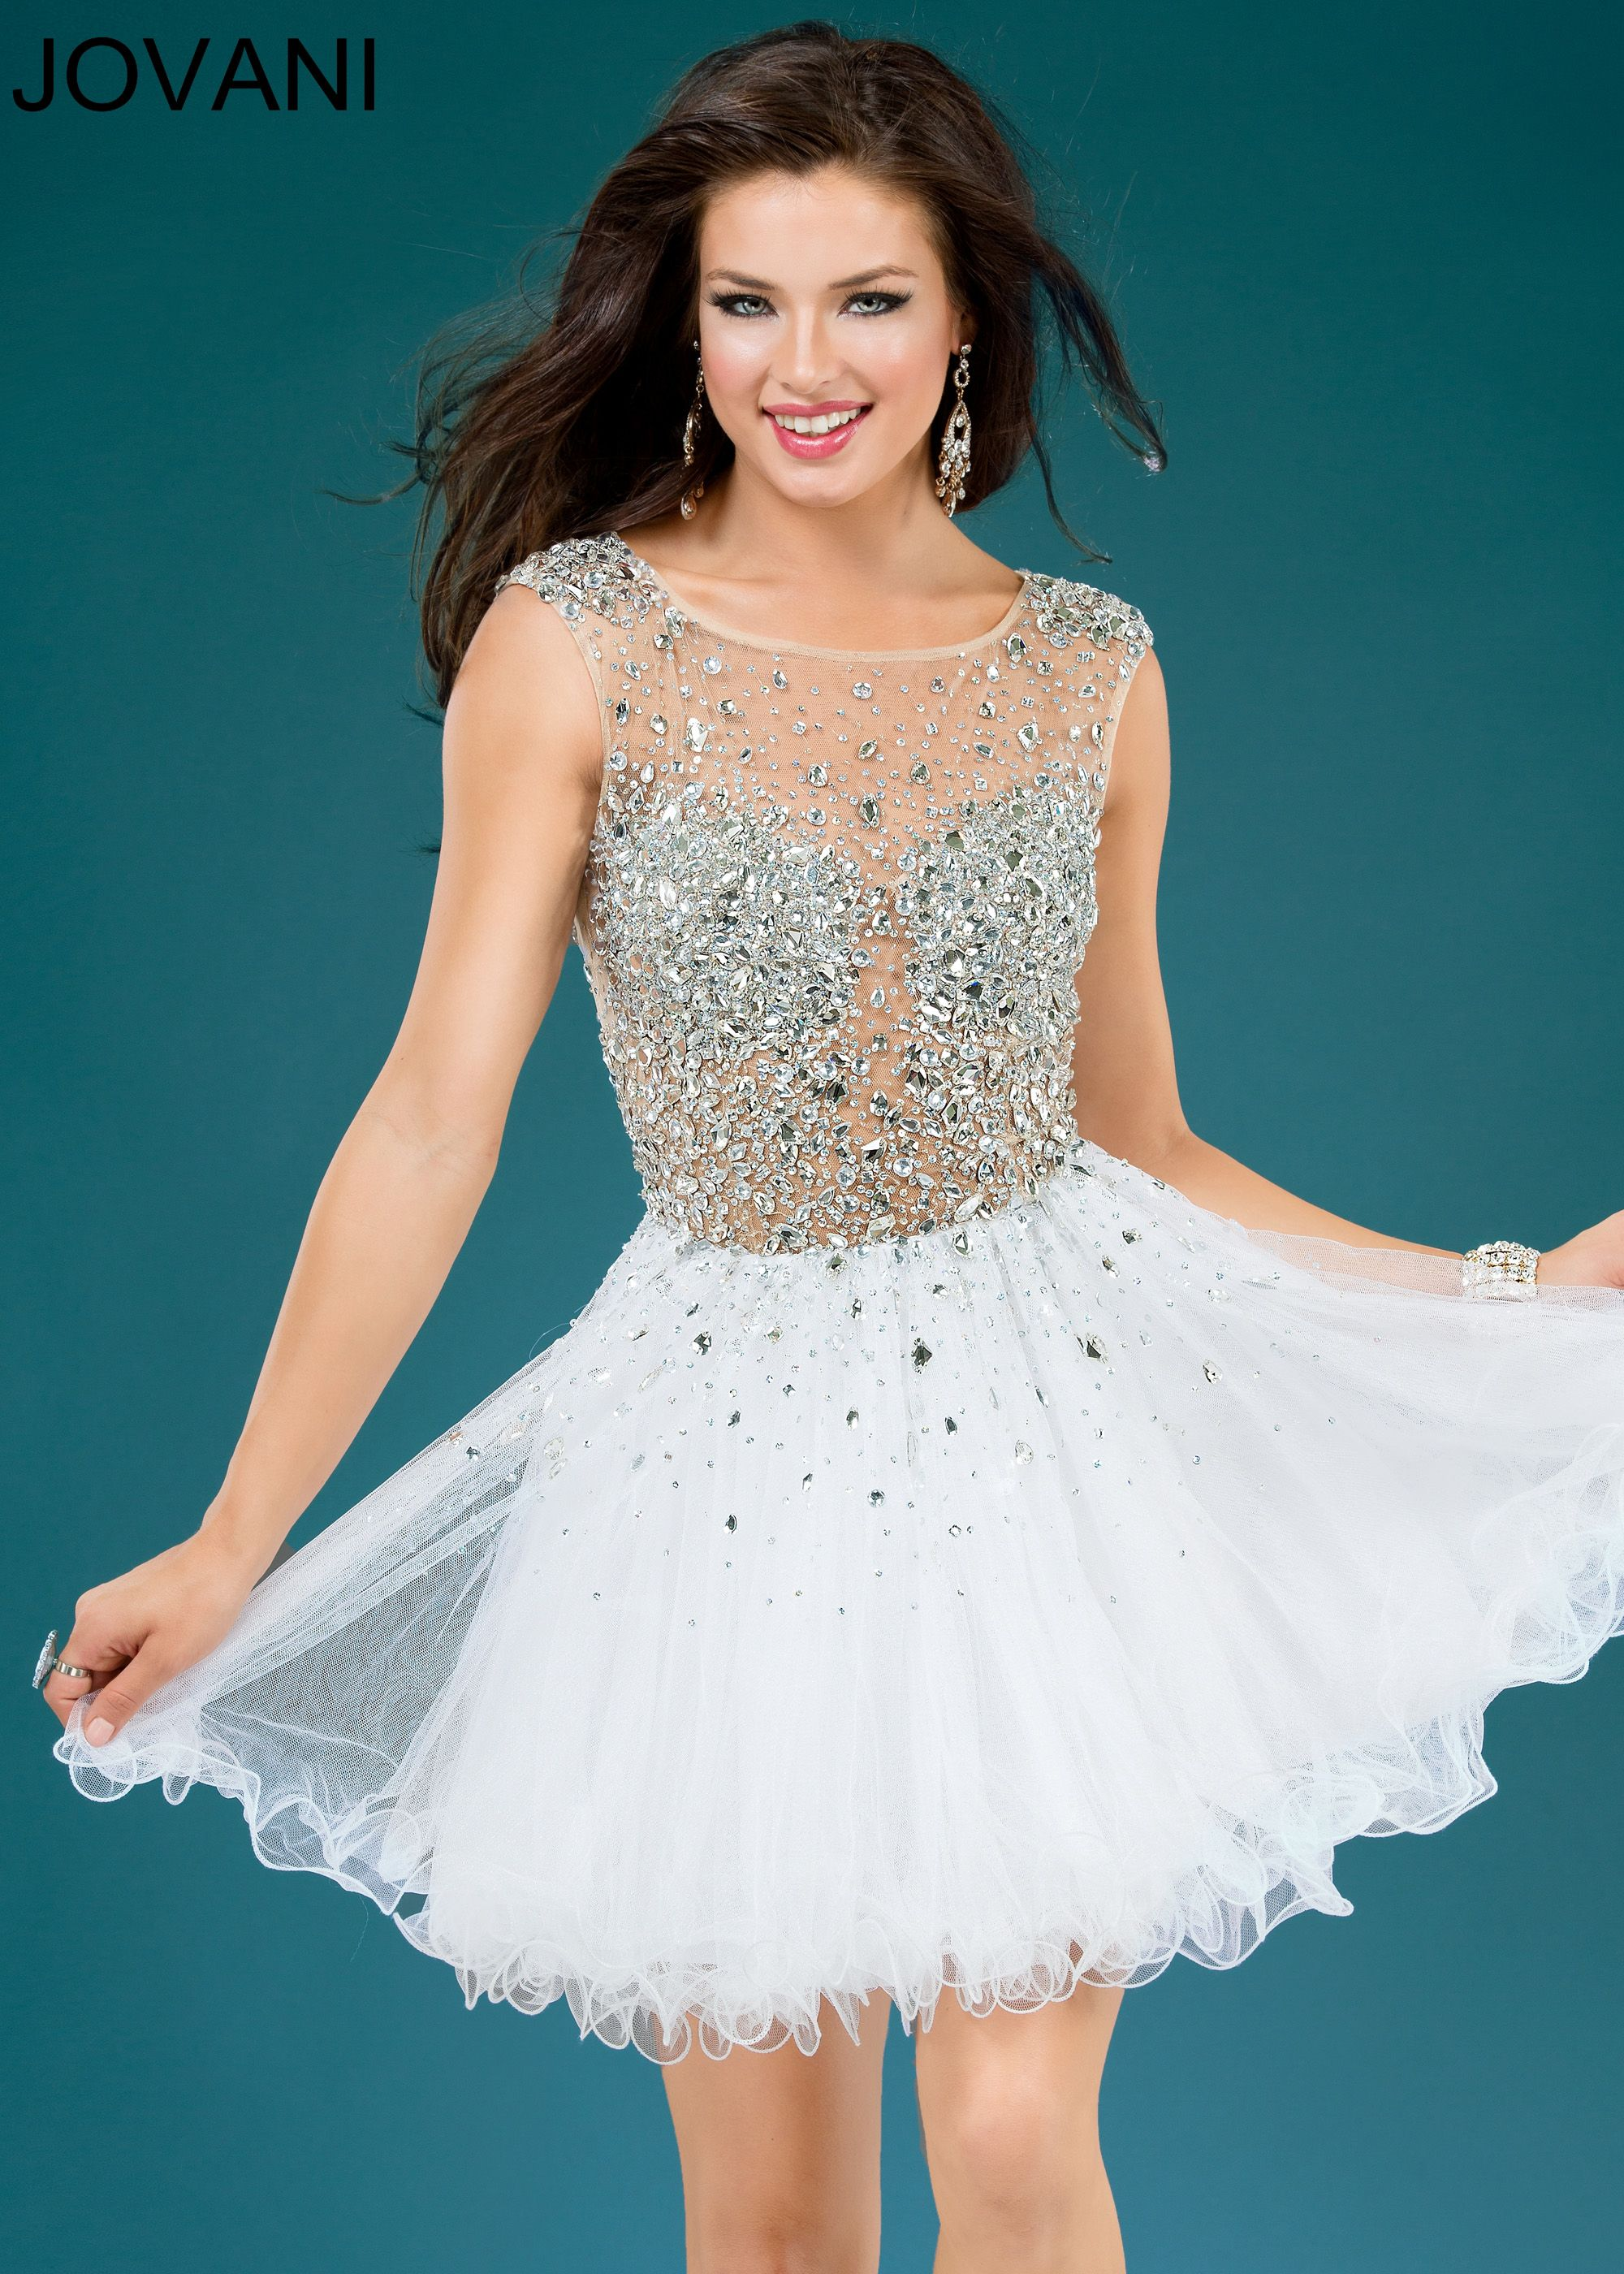 Jovani 79163 - Beaded Sheer White Homecoming Dress | Homecoming ...